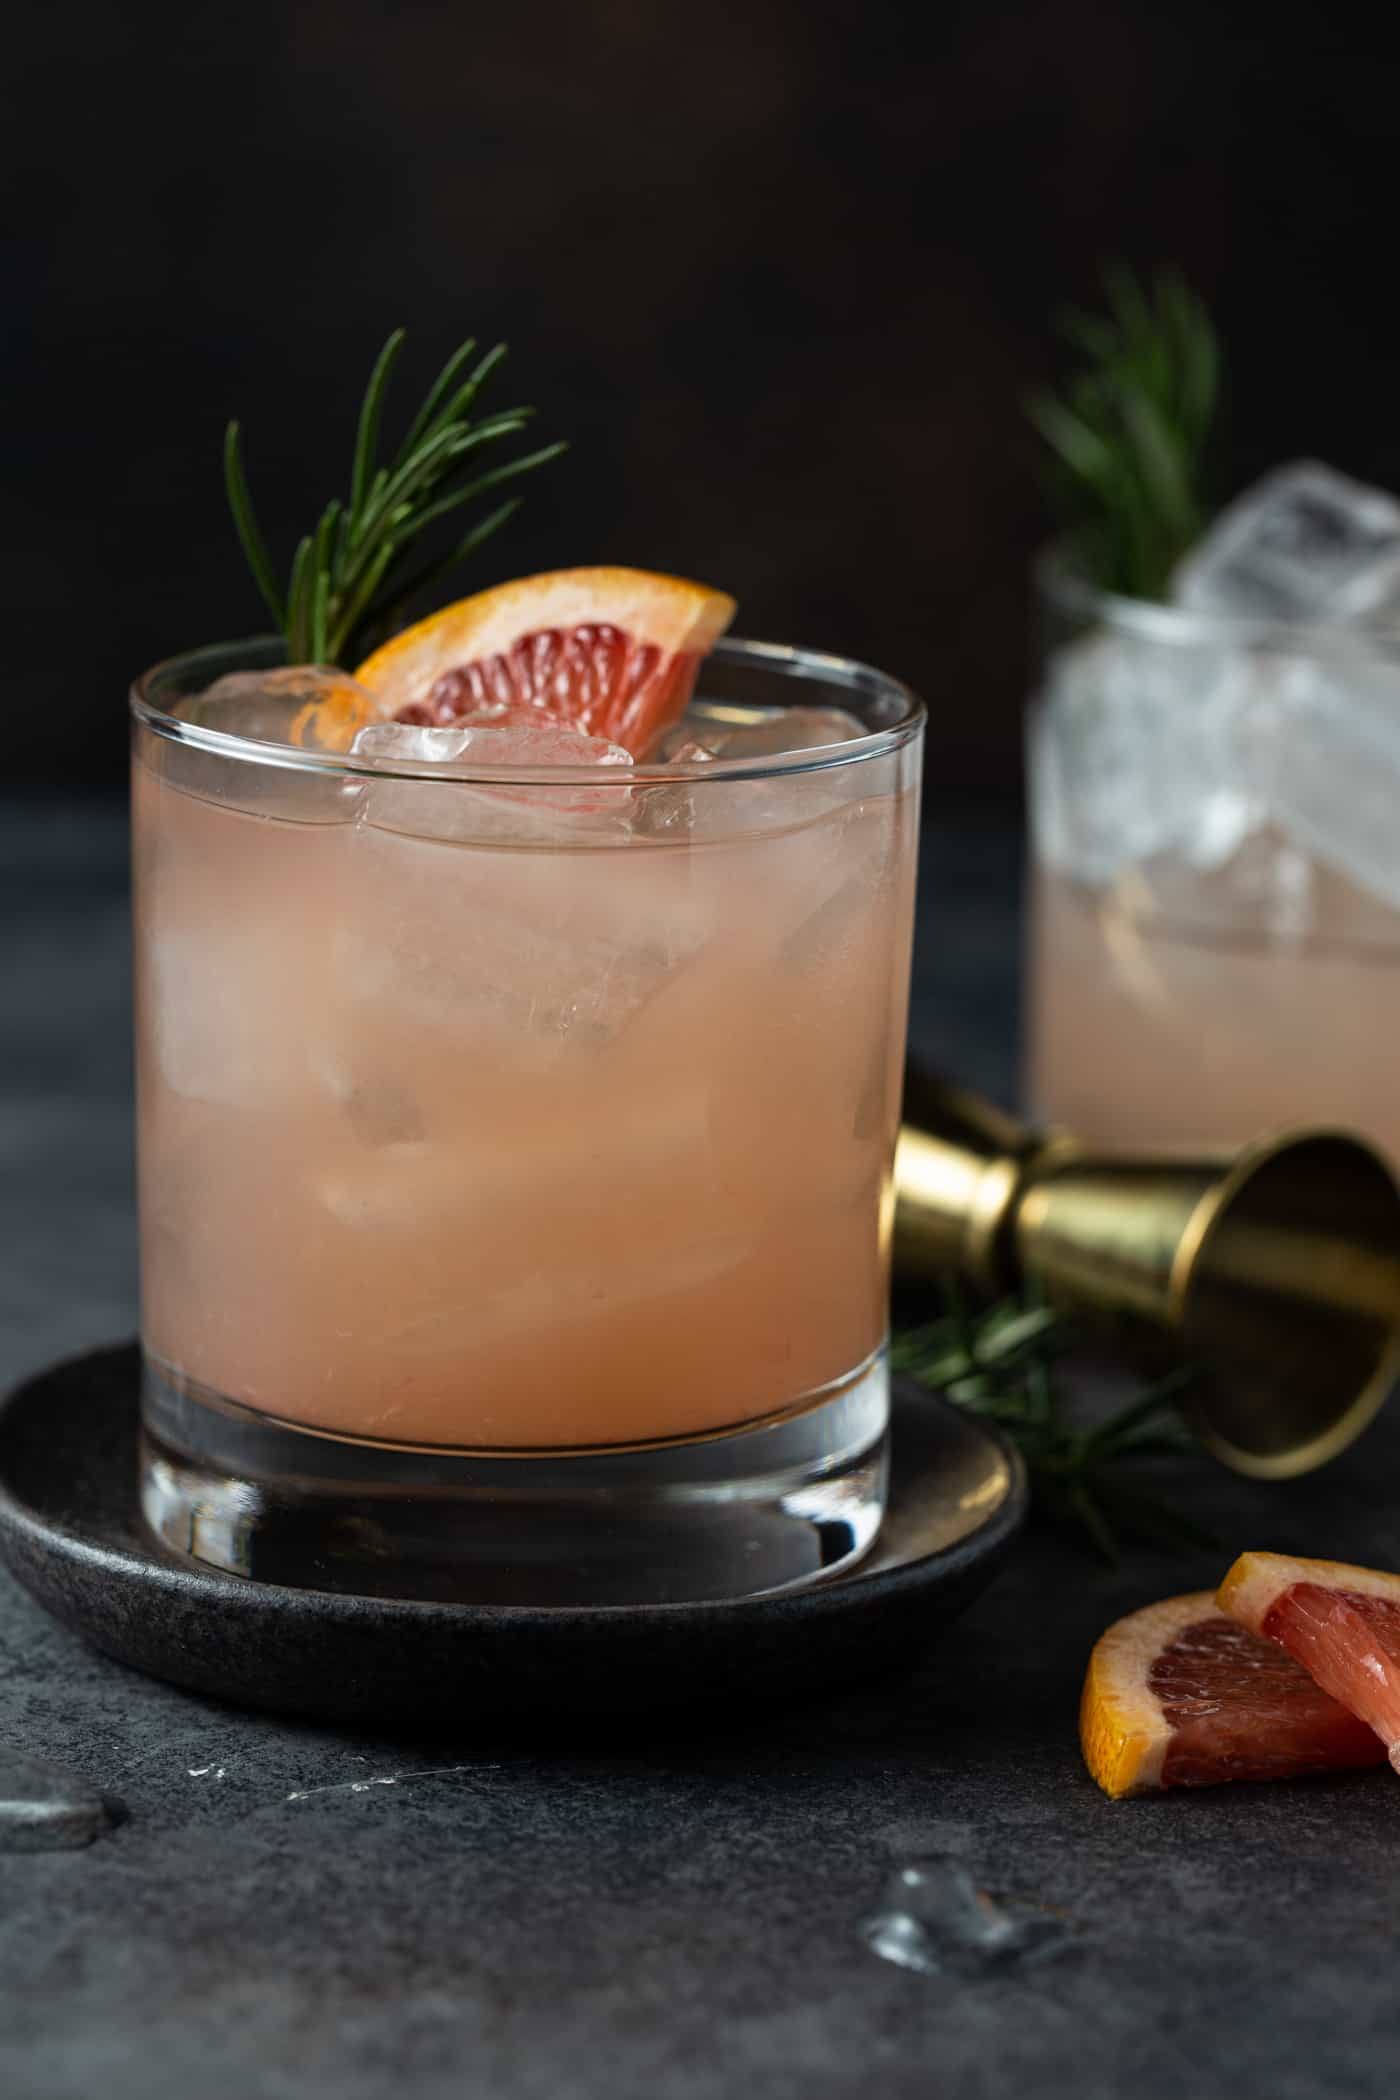 drinks in low ball glasses on dark gray coasters with fresh grapefruit for a garnish.